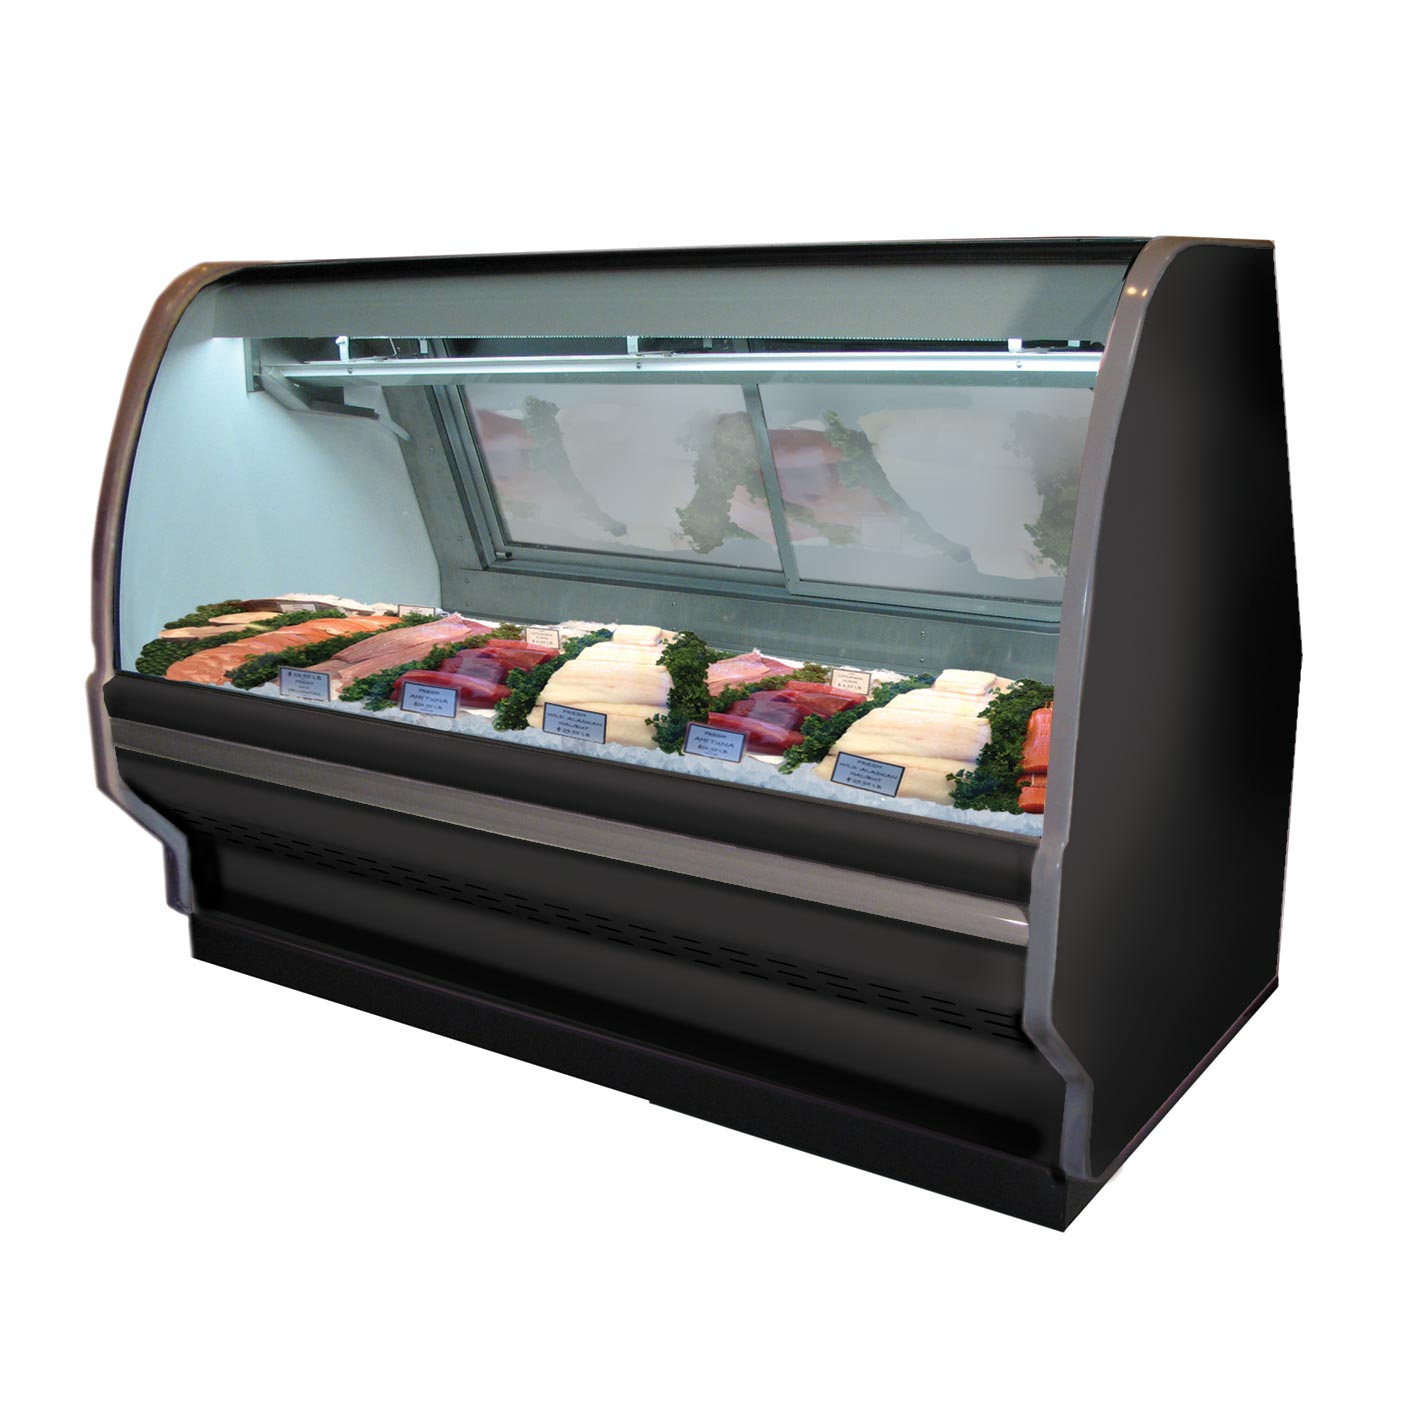 Howard-McCray R-CFS40E-8-S-LED display case, deli seafood / poultry